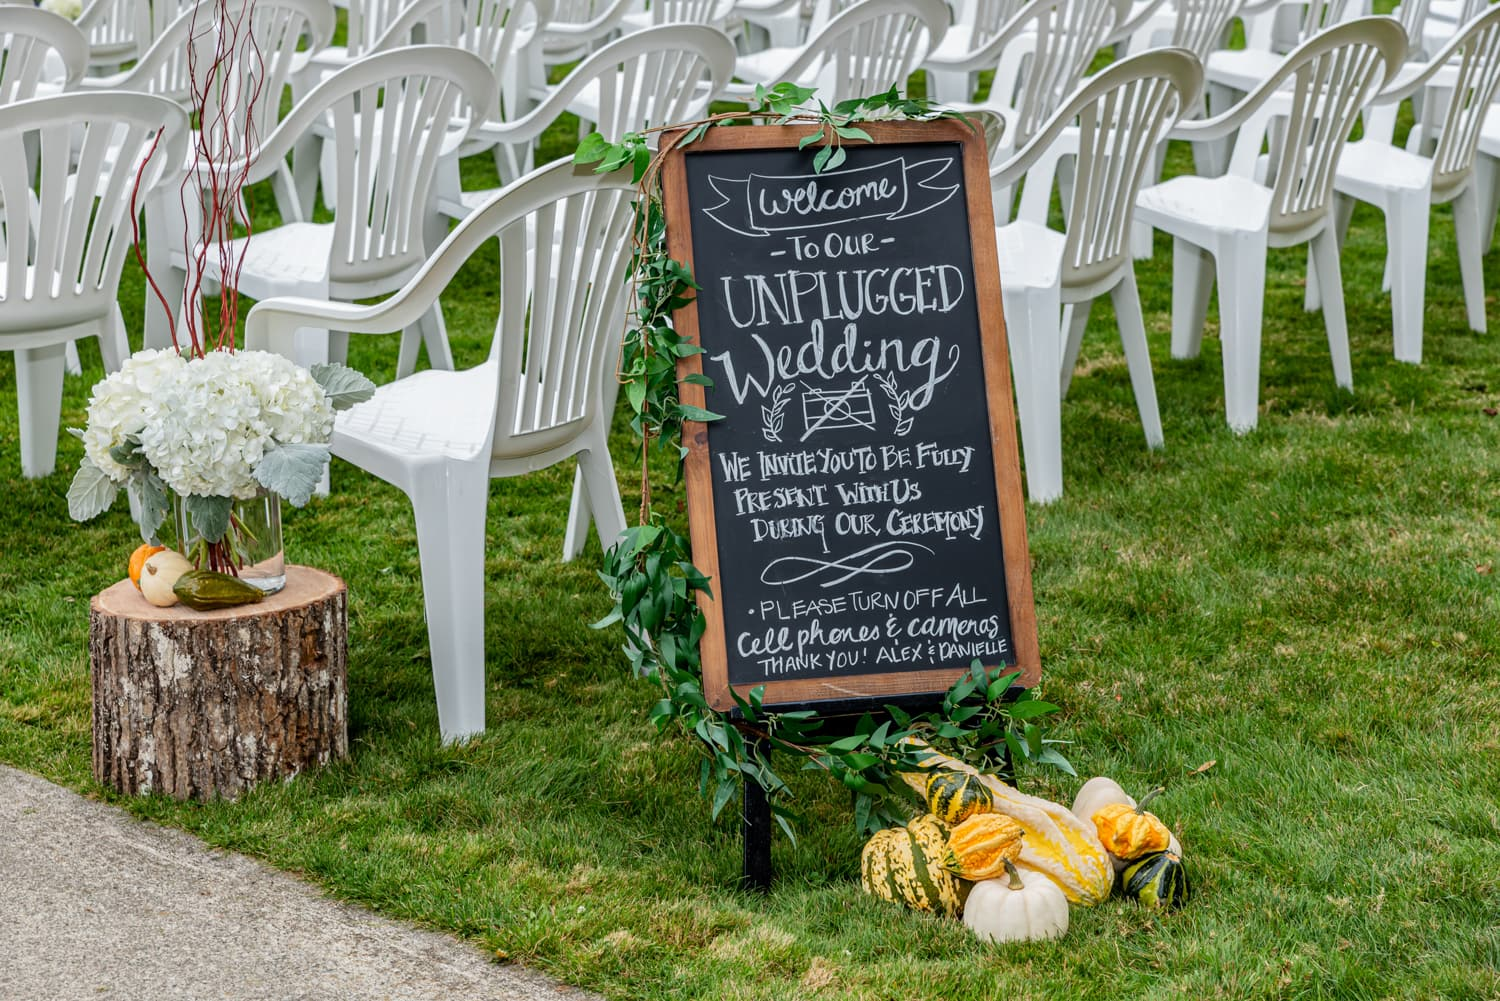 An unplugged wedding ceremony sign welcoming the guests at the ceremony location at Digby Pines.